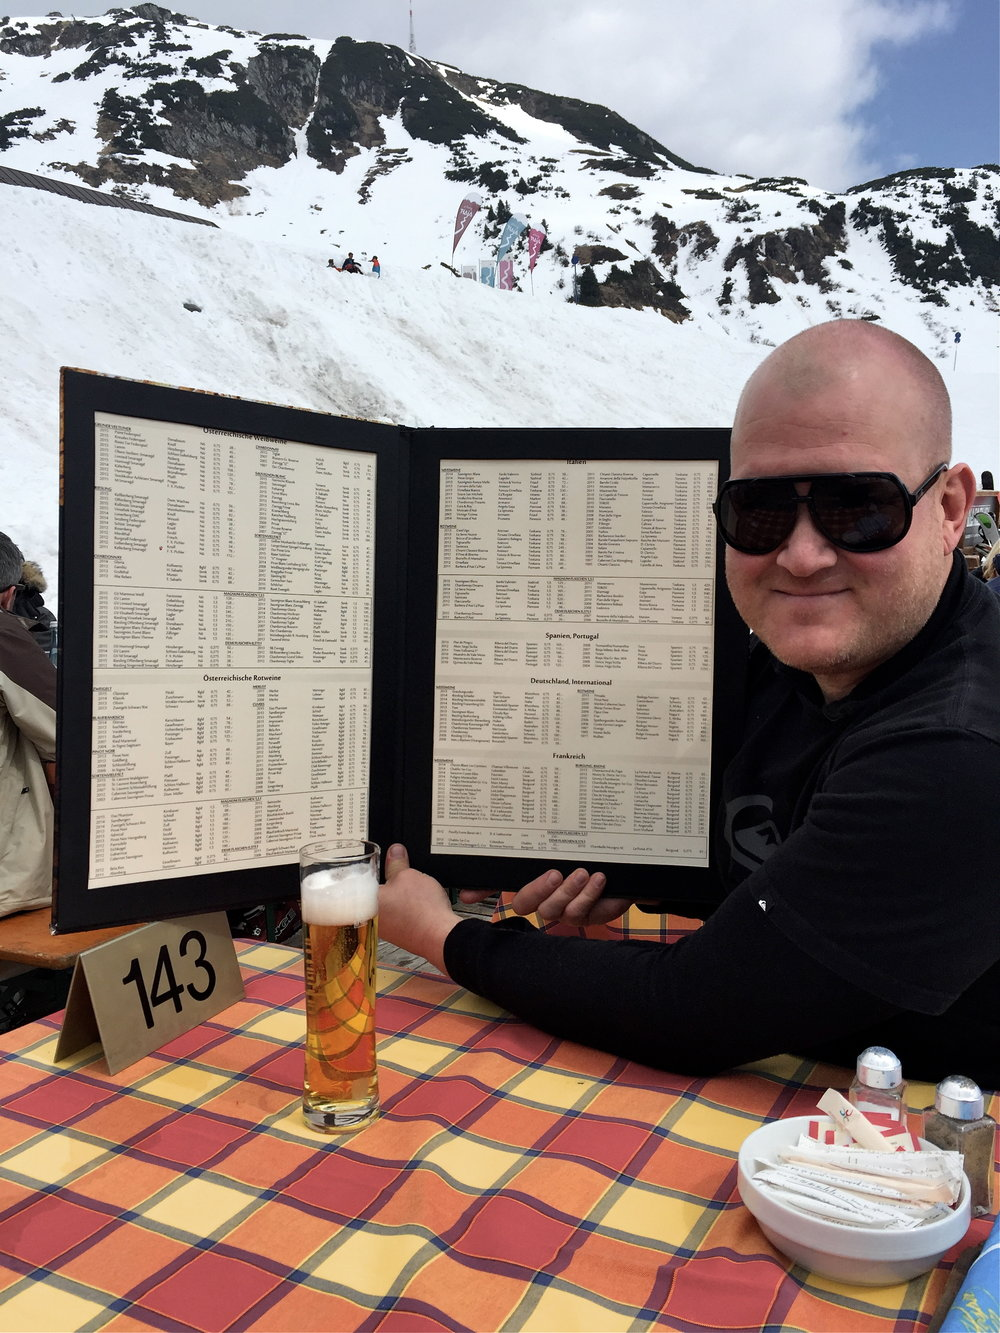 Dennis with the wine list at Hospiz Alm, St. Christof, Austria.